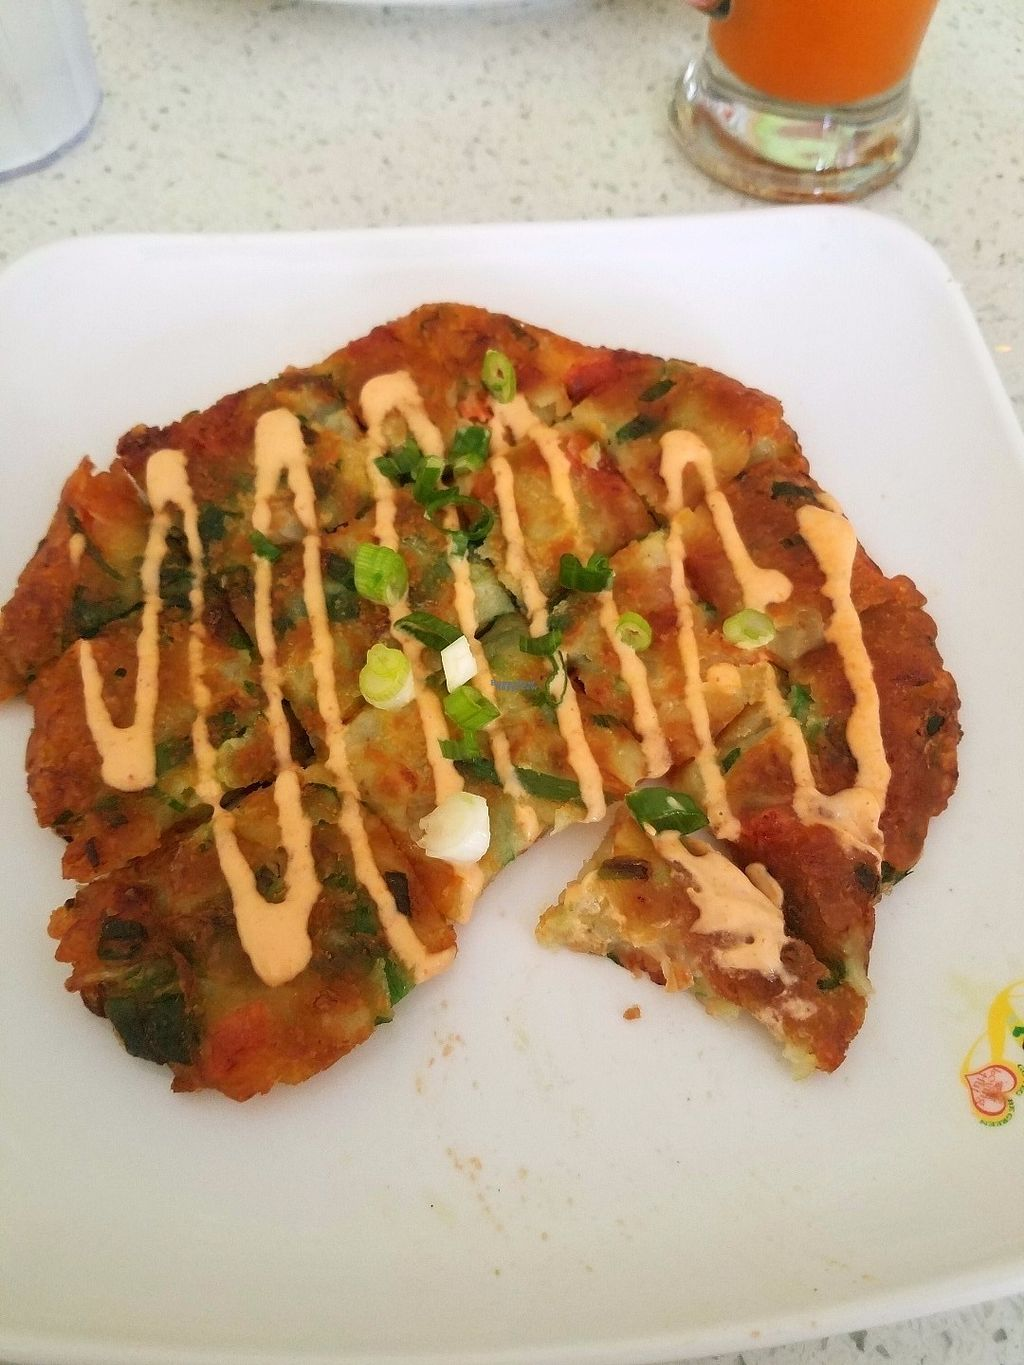 """Photo of Loving Hut  by <a href=""""/members/profile/AshleyBeckwith"""">AshleyBeckwith</a> <br/>Pajeon. Amazing! Almost like a potato pancake <br/> October 20, 2016  - <a href='/contact/abuse/image/80749/183227'>Report</a>"""